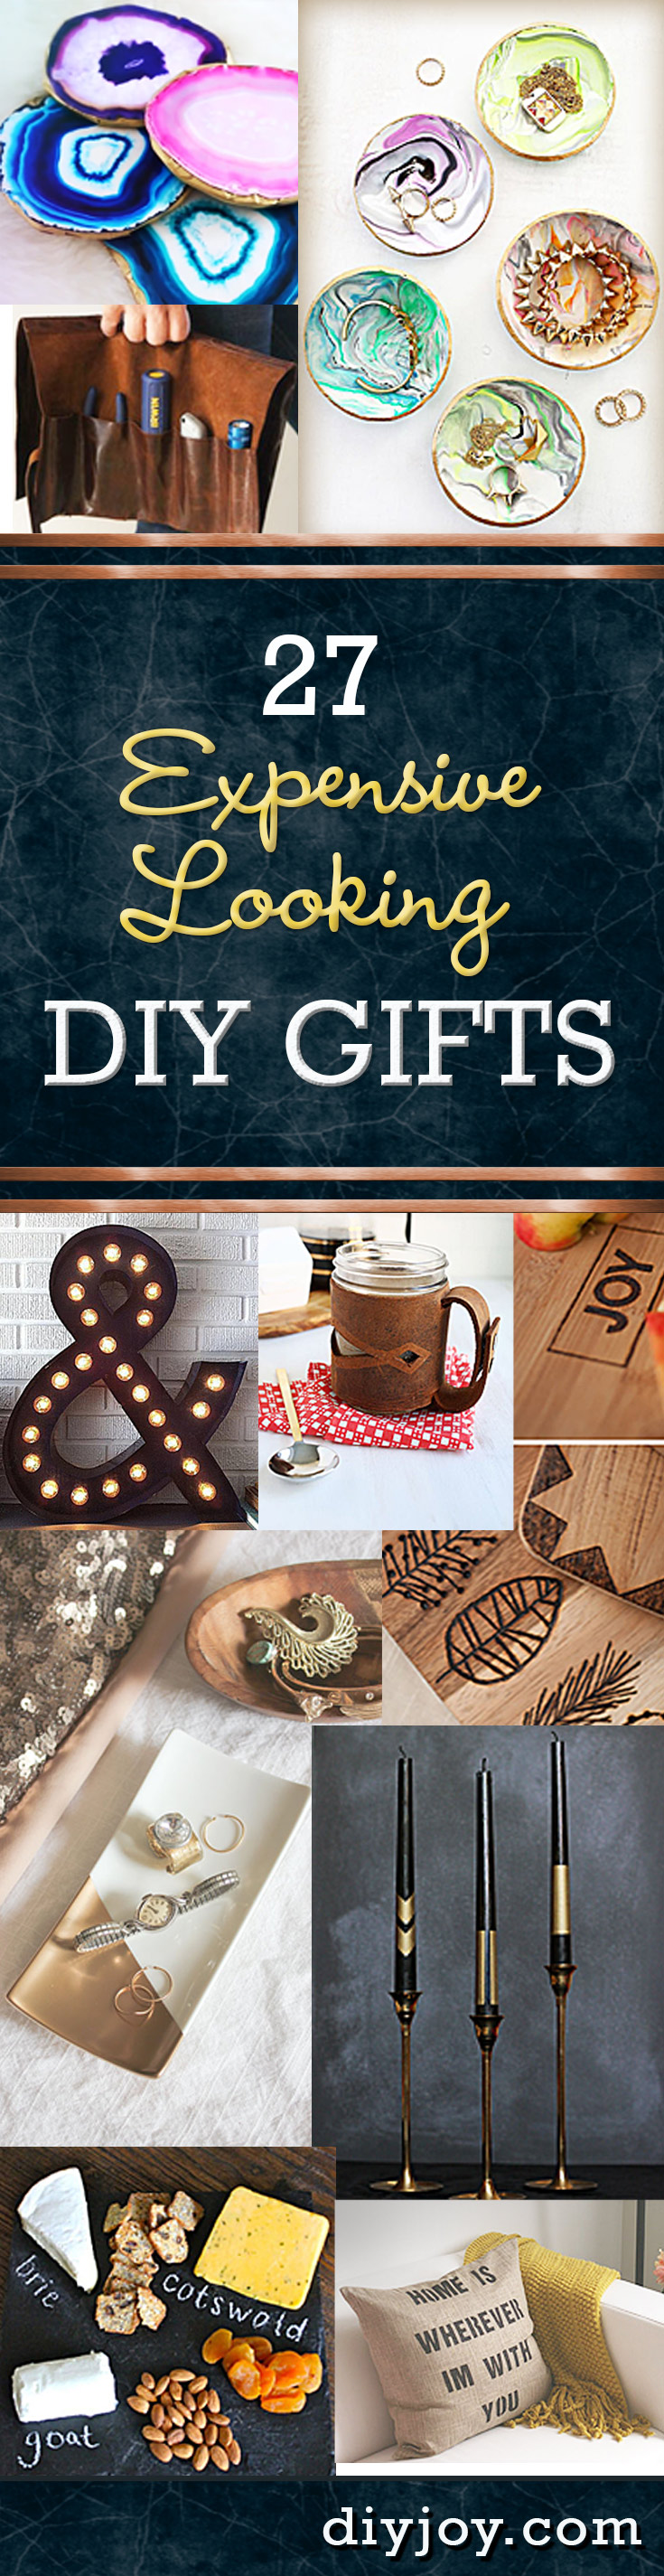 Inexpensive DIY Gifts And Creative Crafts Projects That Make Cool Gift Ideas CHEAP